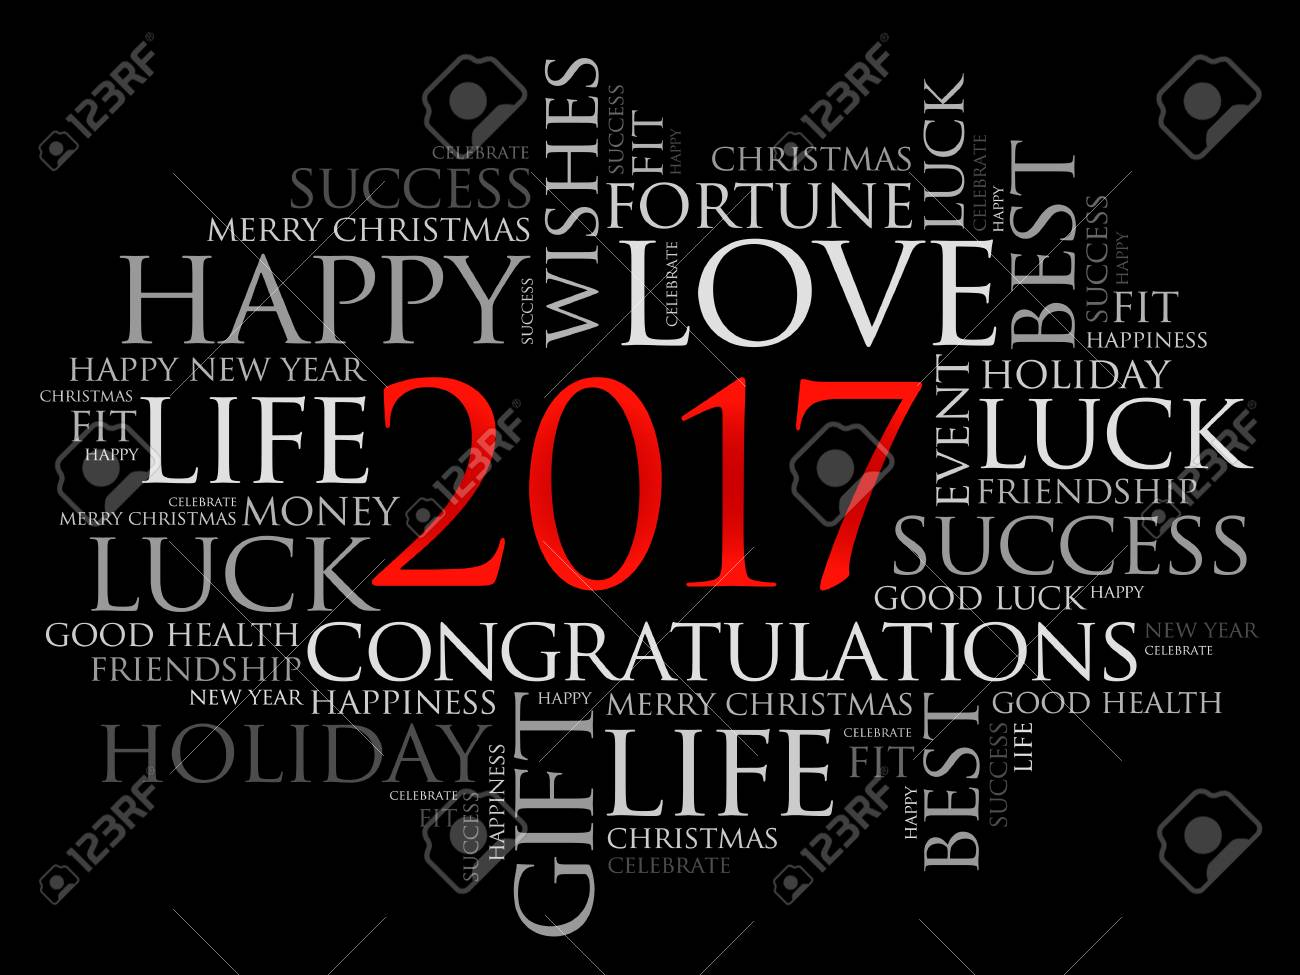 2017 year greeting word cloud collage happy new year celebration 2017 year greeting word cloud collage happy new year celebration greeting card stock vector m4hsunfo Image collections